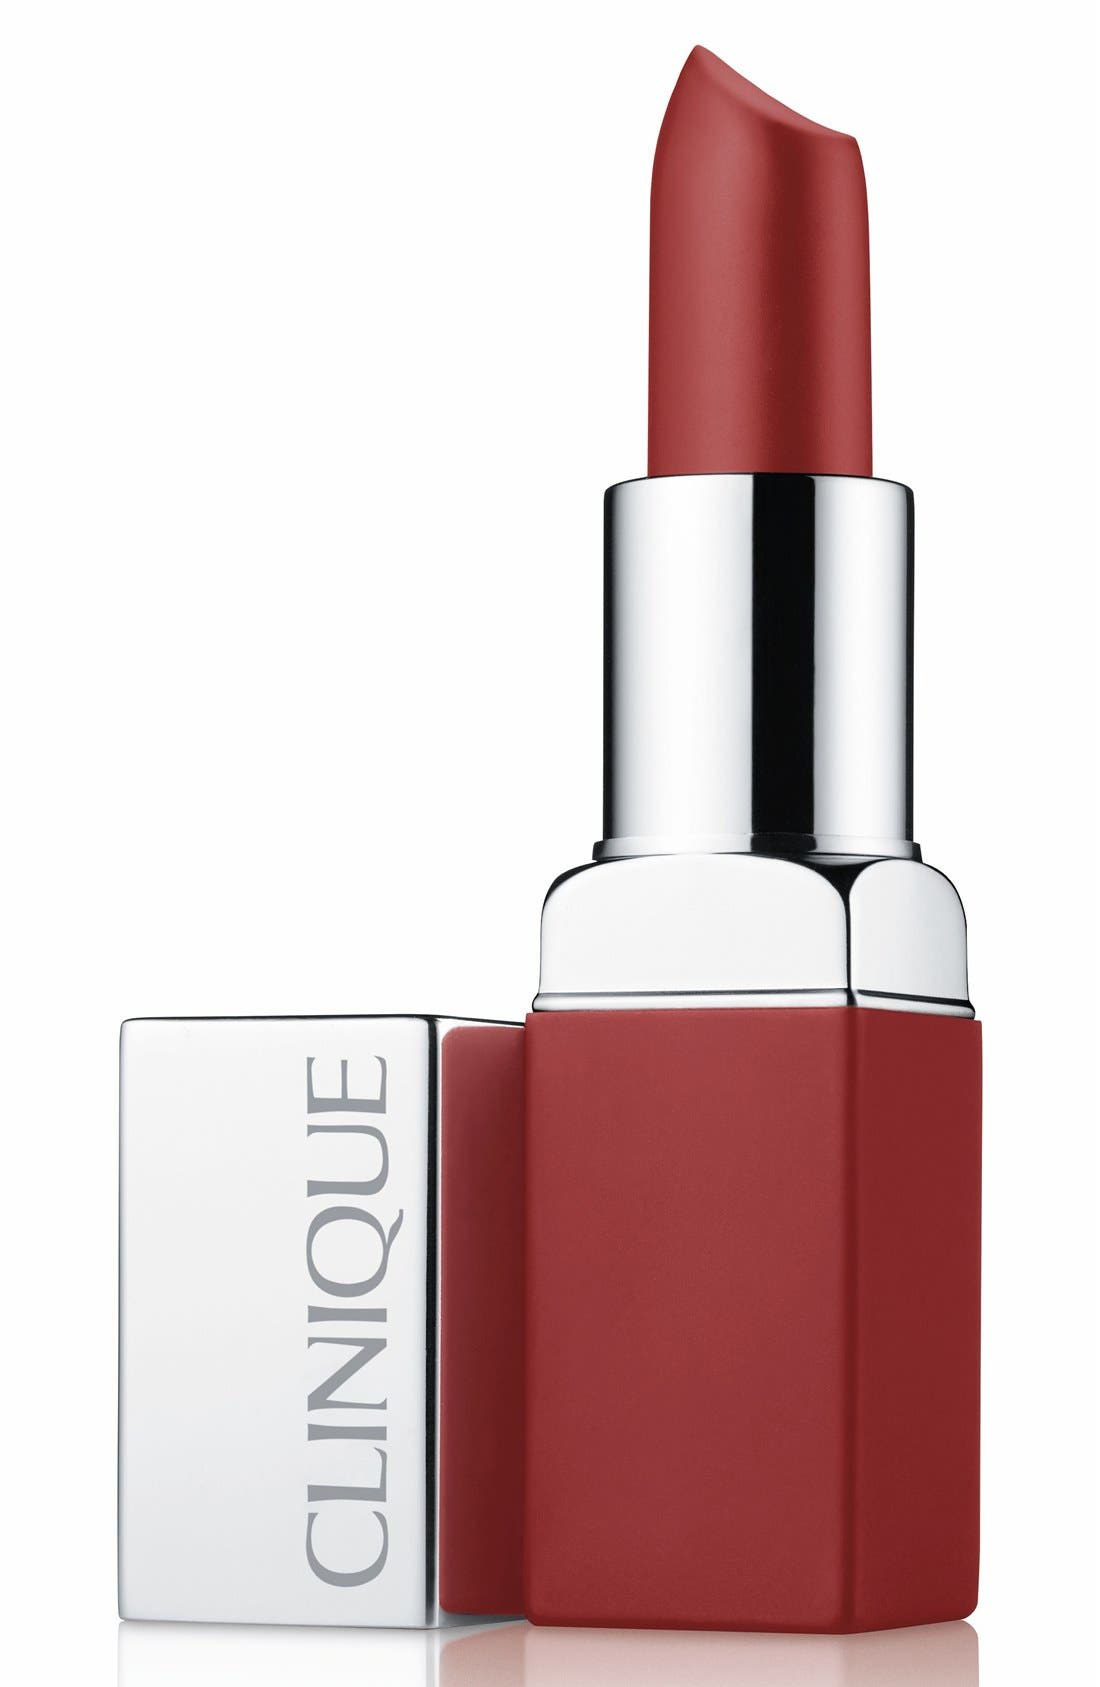 Clinique Pop Matt3 Lip Color + Primer